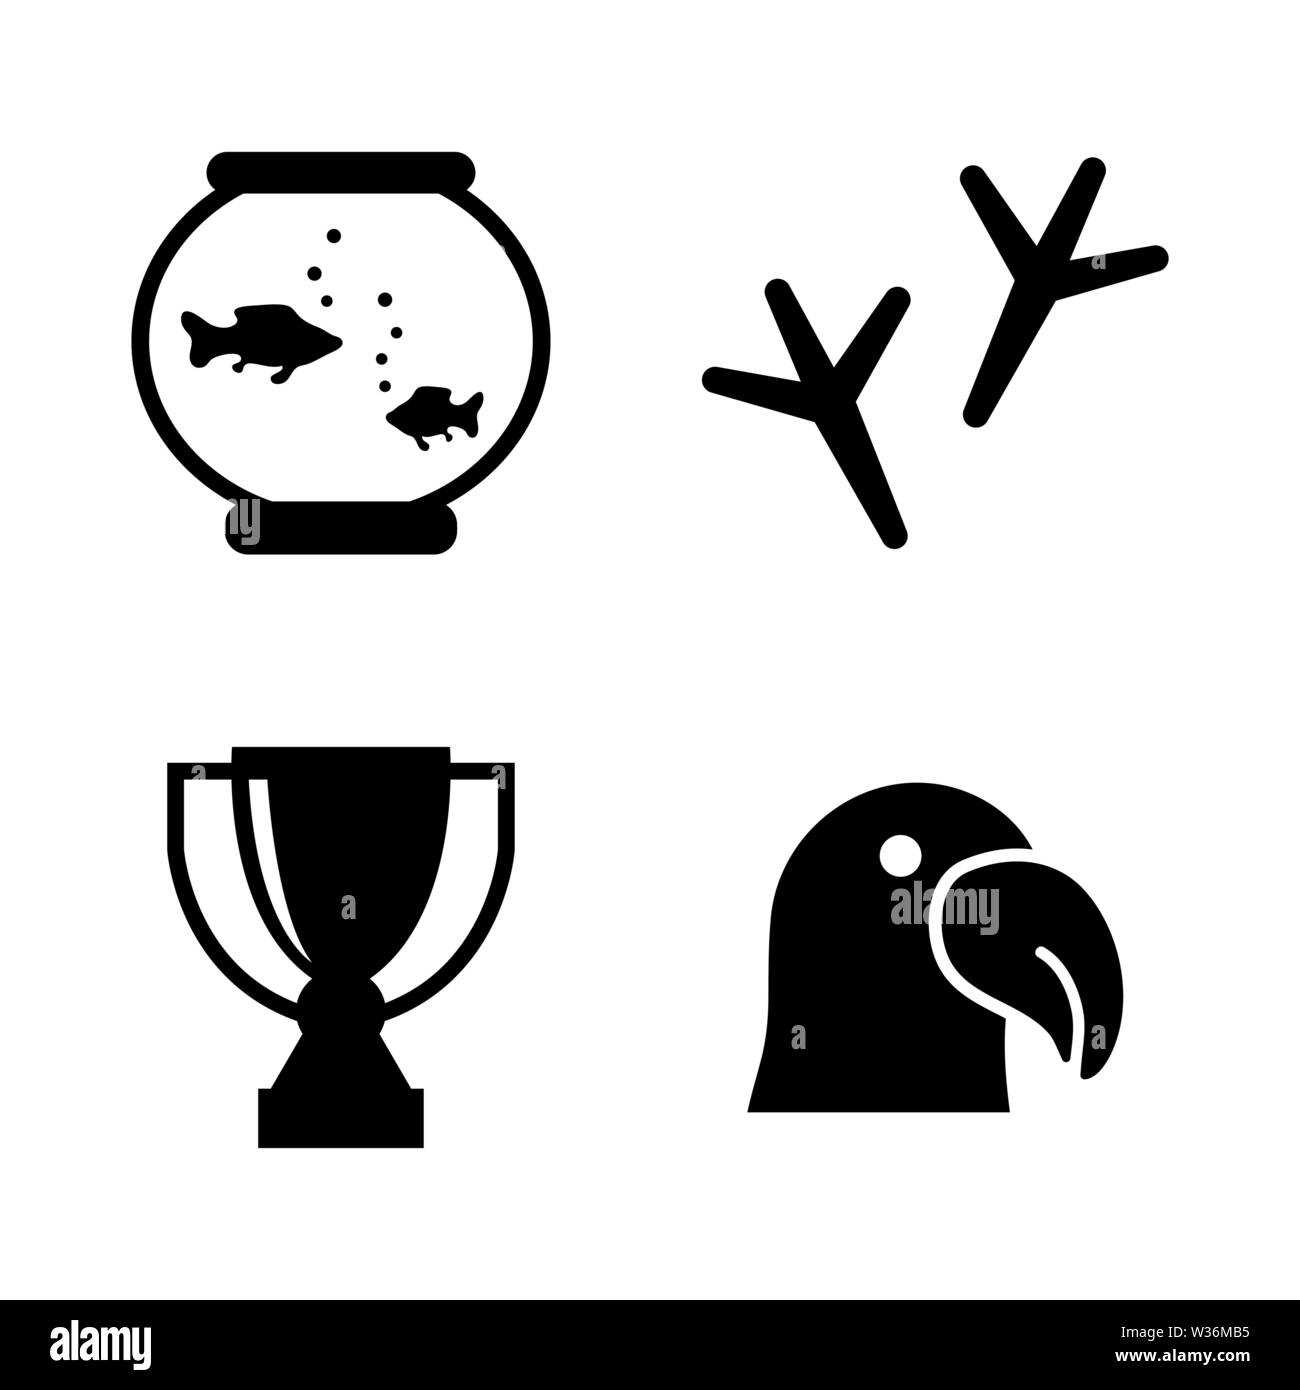 Animal Exhibition. Simple Related Vector Icons Set for Video, Mobile Apps, Web Sites, Print Projects and Your Design. Animal Exhibition icon Black Fla - Stock Image